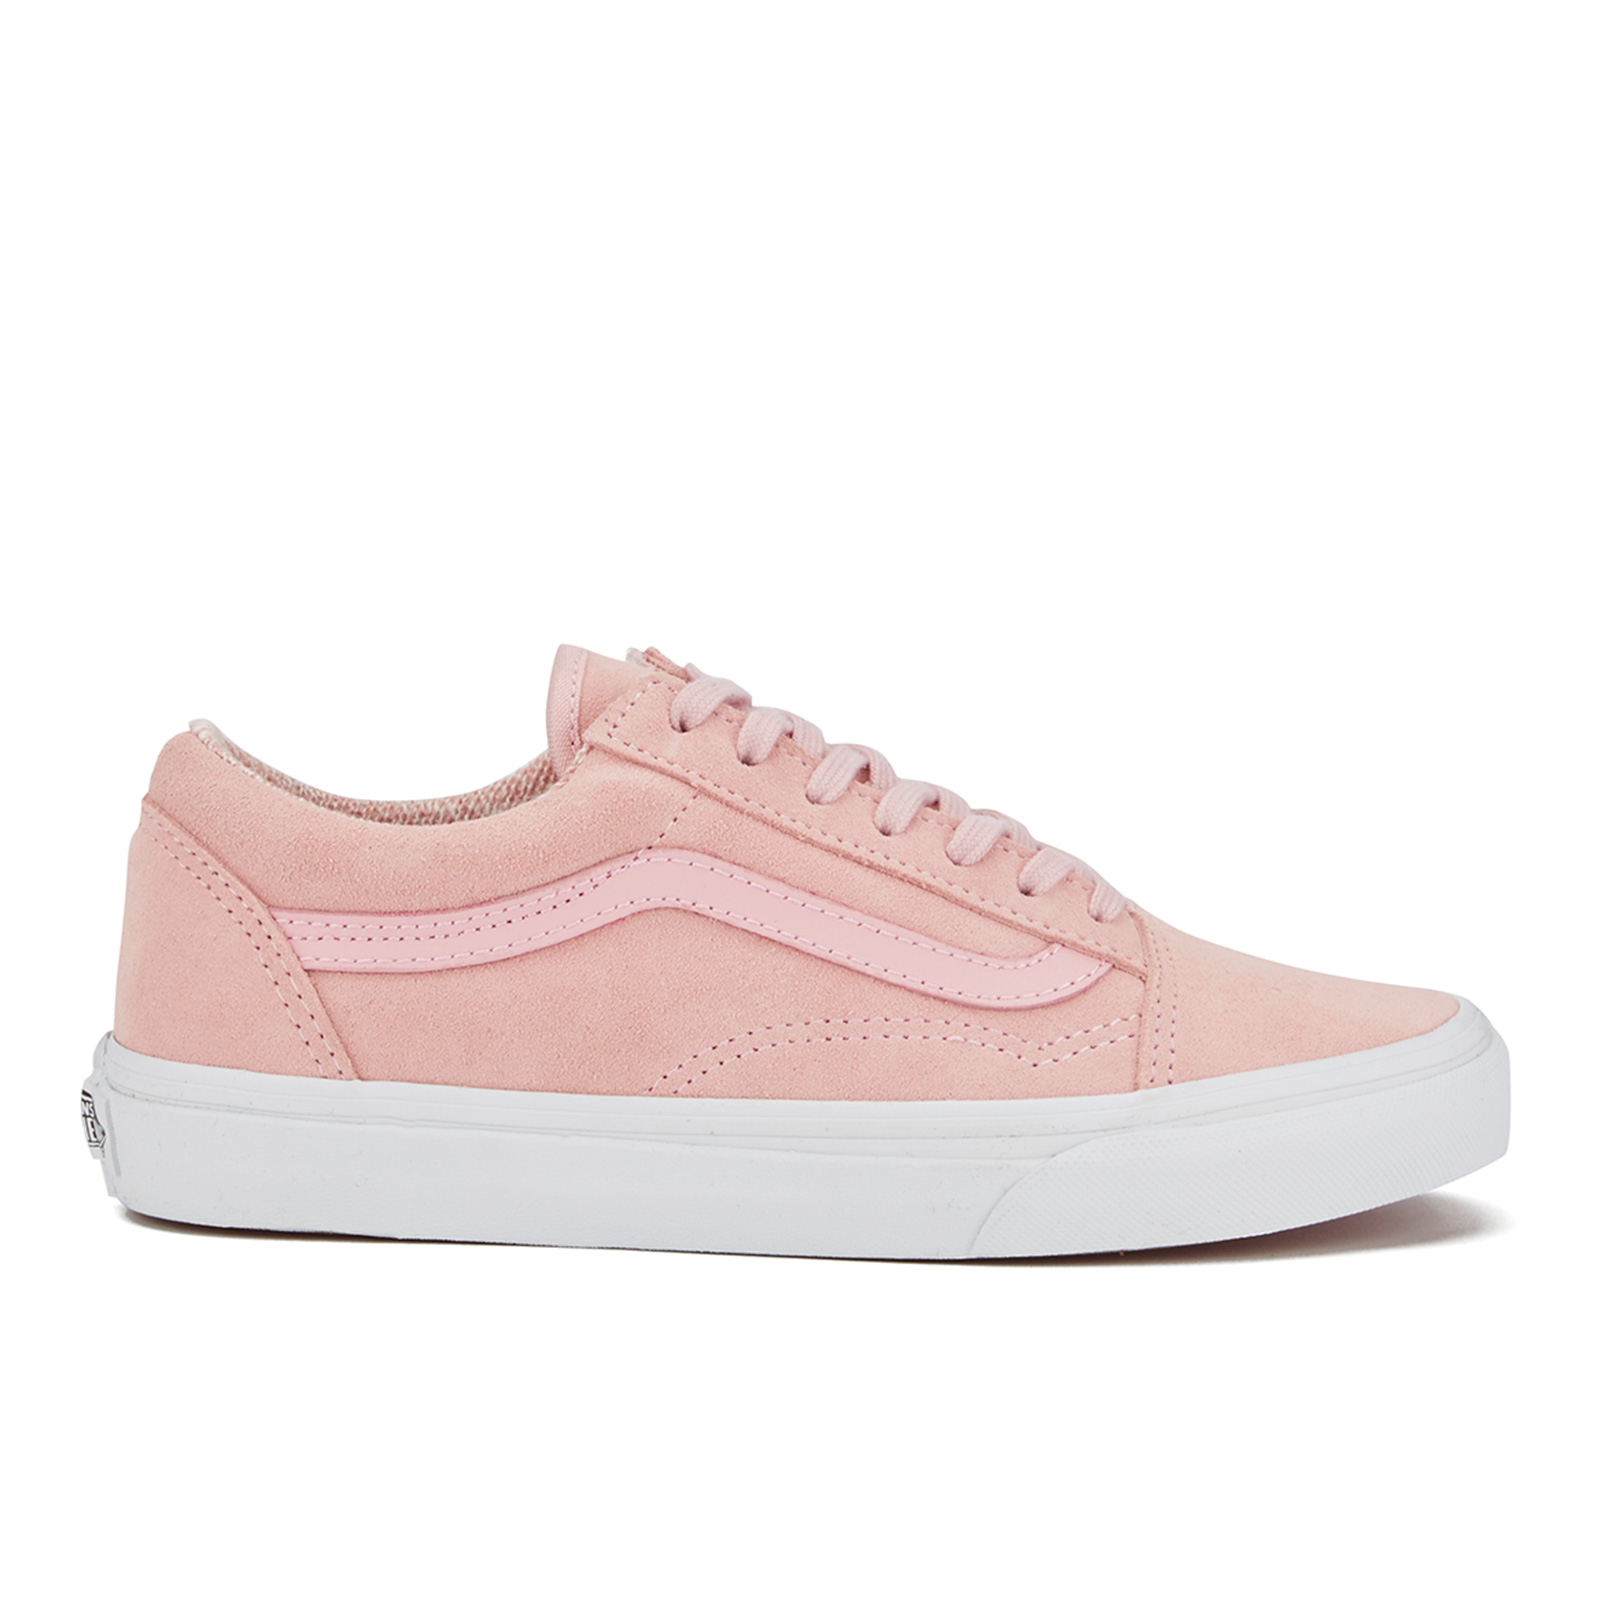 94846c4975fc Vans Women s Old Skool Suede Woven Trainers - Peachskin True White - Free  UK Delivery over £50